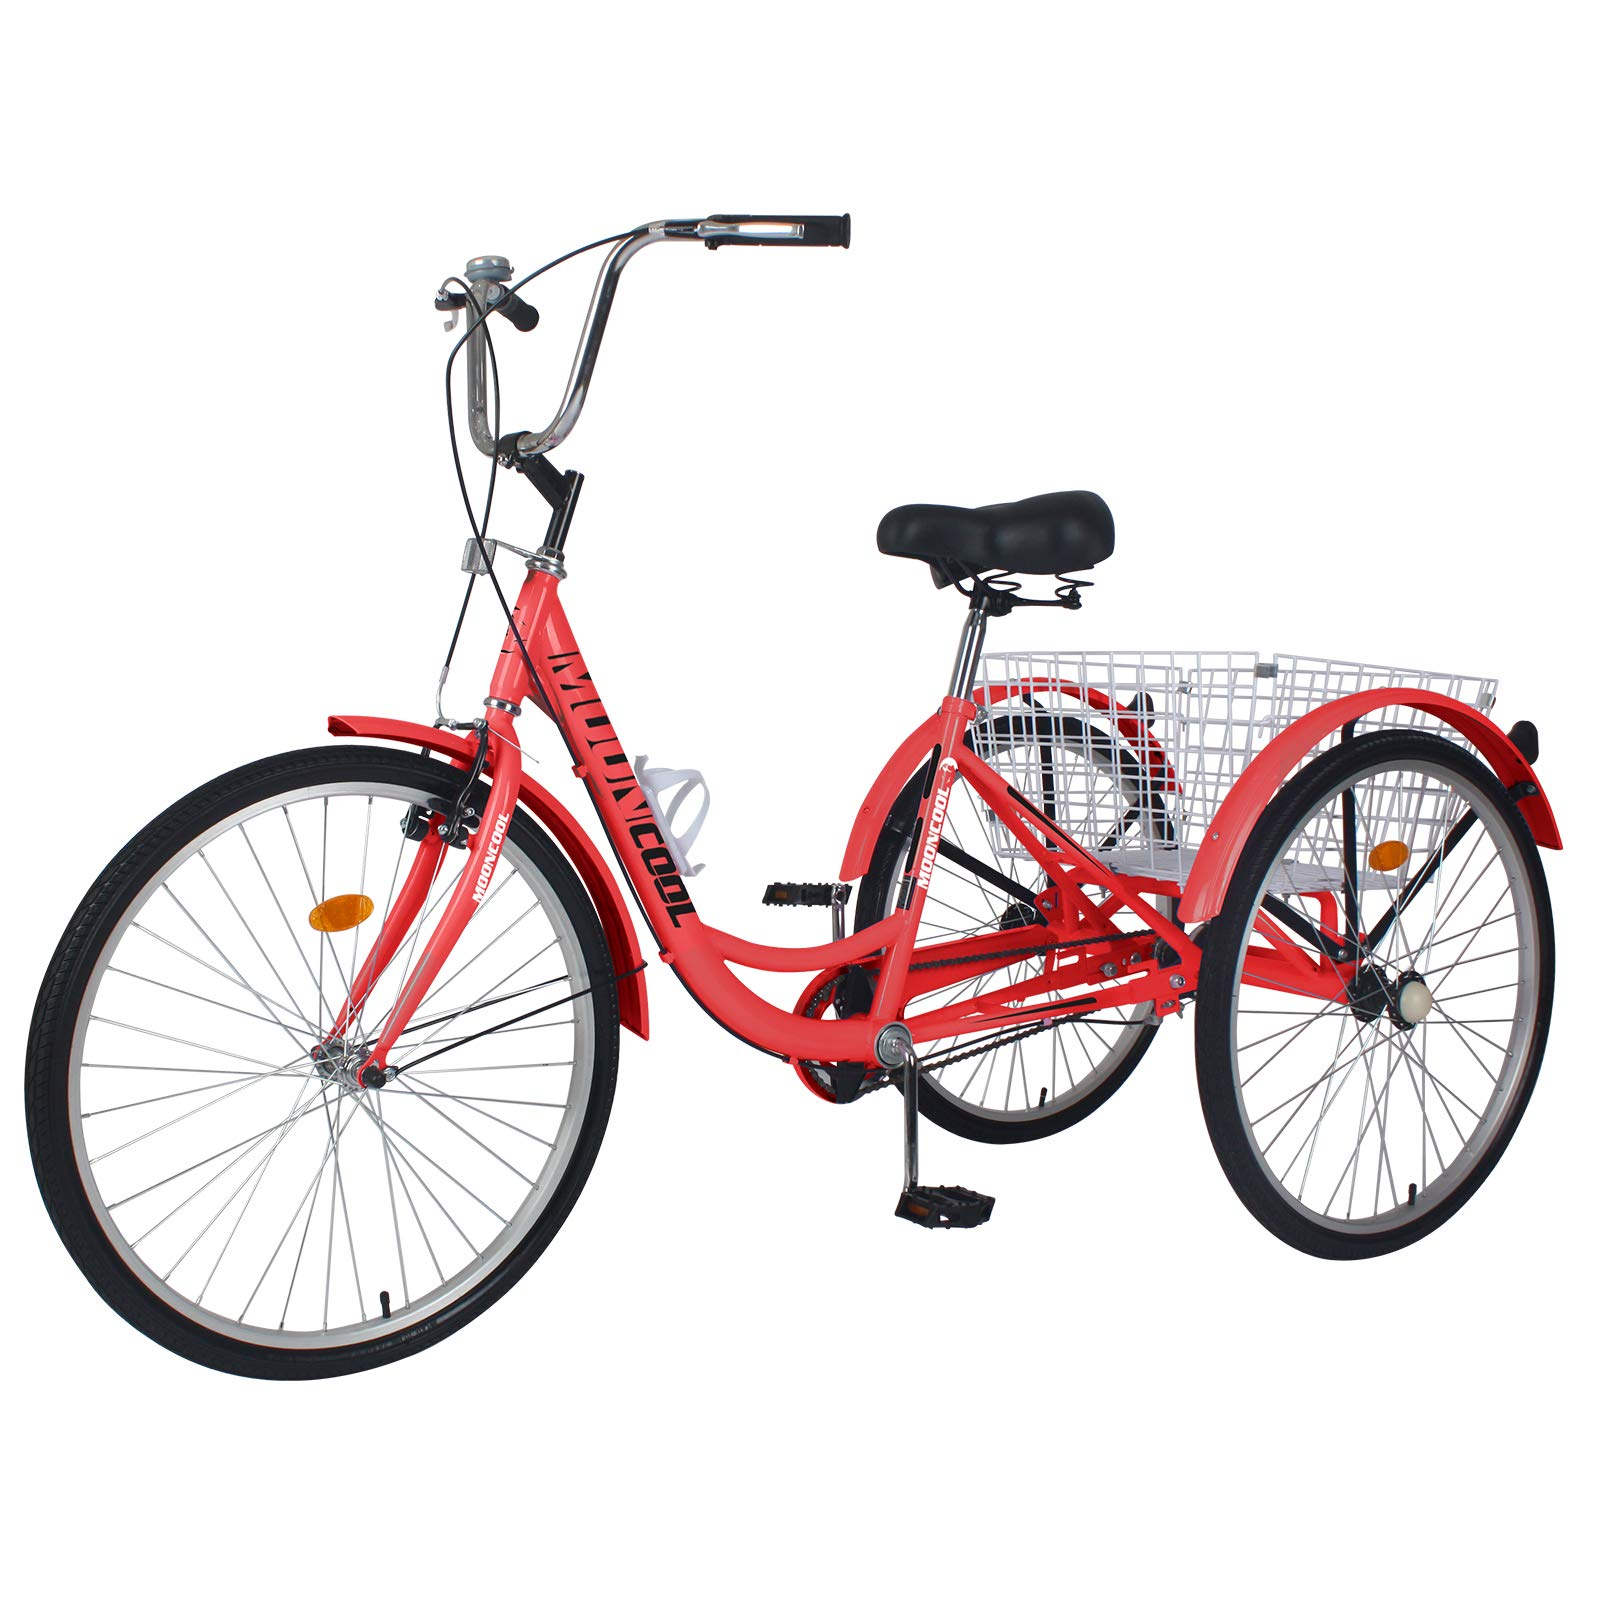 Adult Tricycles, Adult Trikes 20/24/26 inch Single Speed 3 Wheel Bikes for Adults Bicycles Cruise Trike with Shopping Basket for Seniors, Women, Men